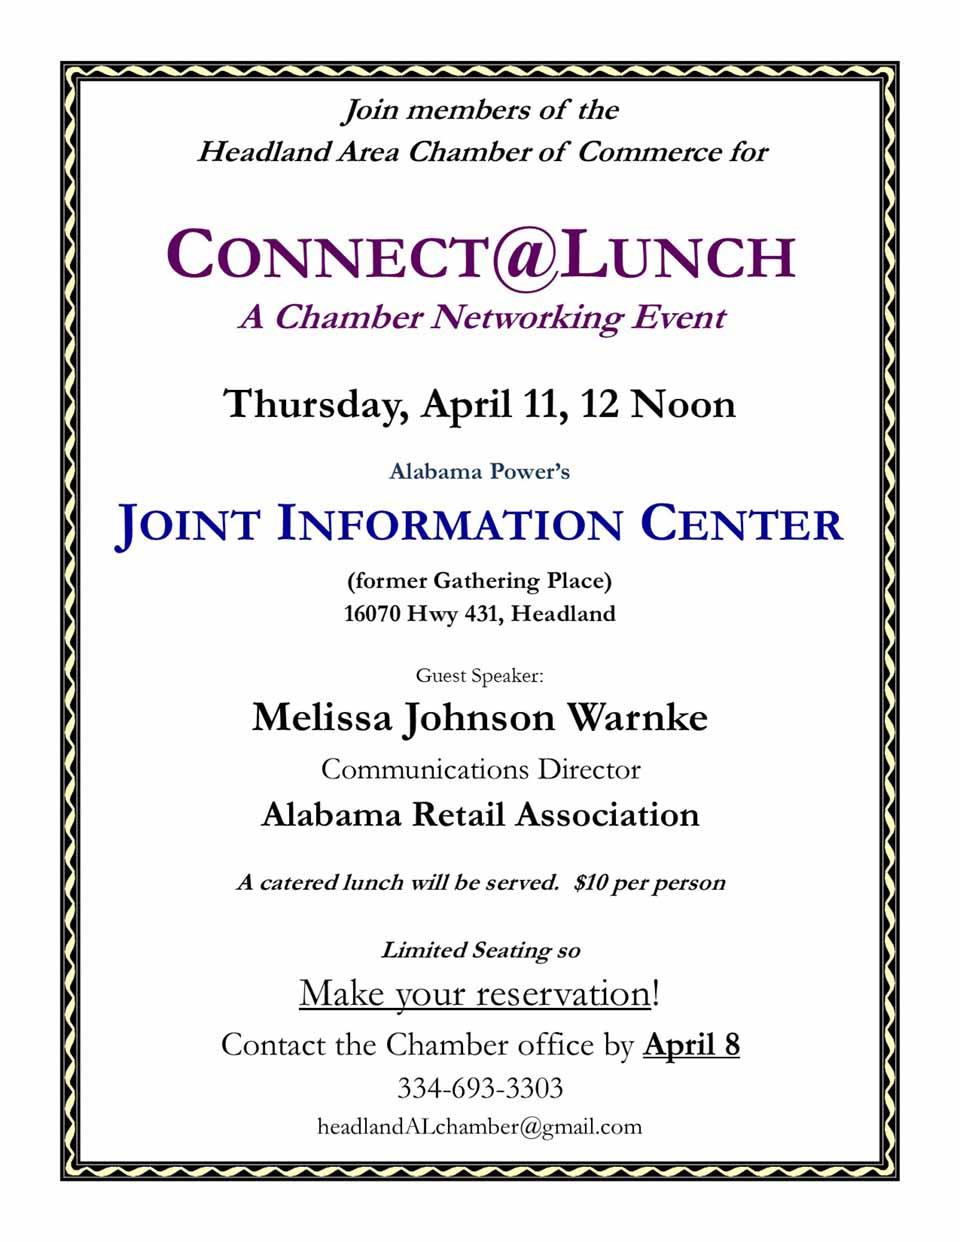 2019 04 11 HCoC Connect at Lunch Joint Information Center